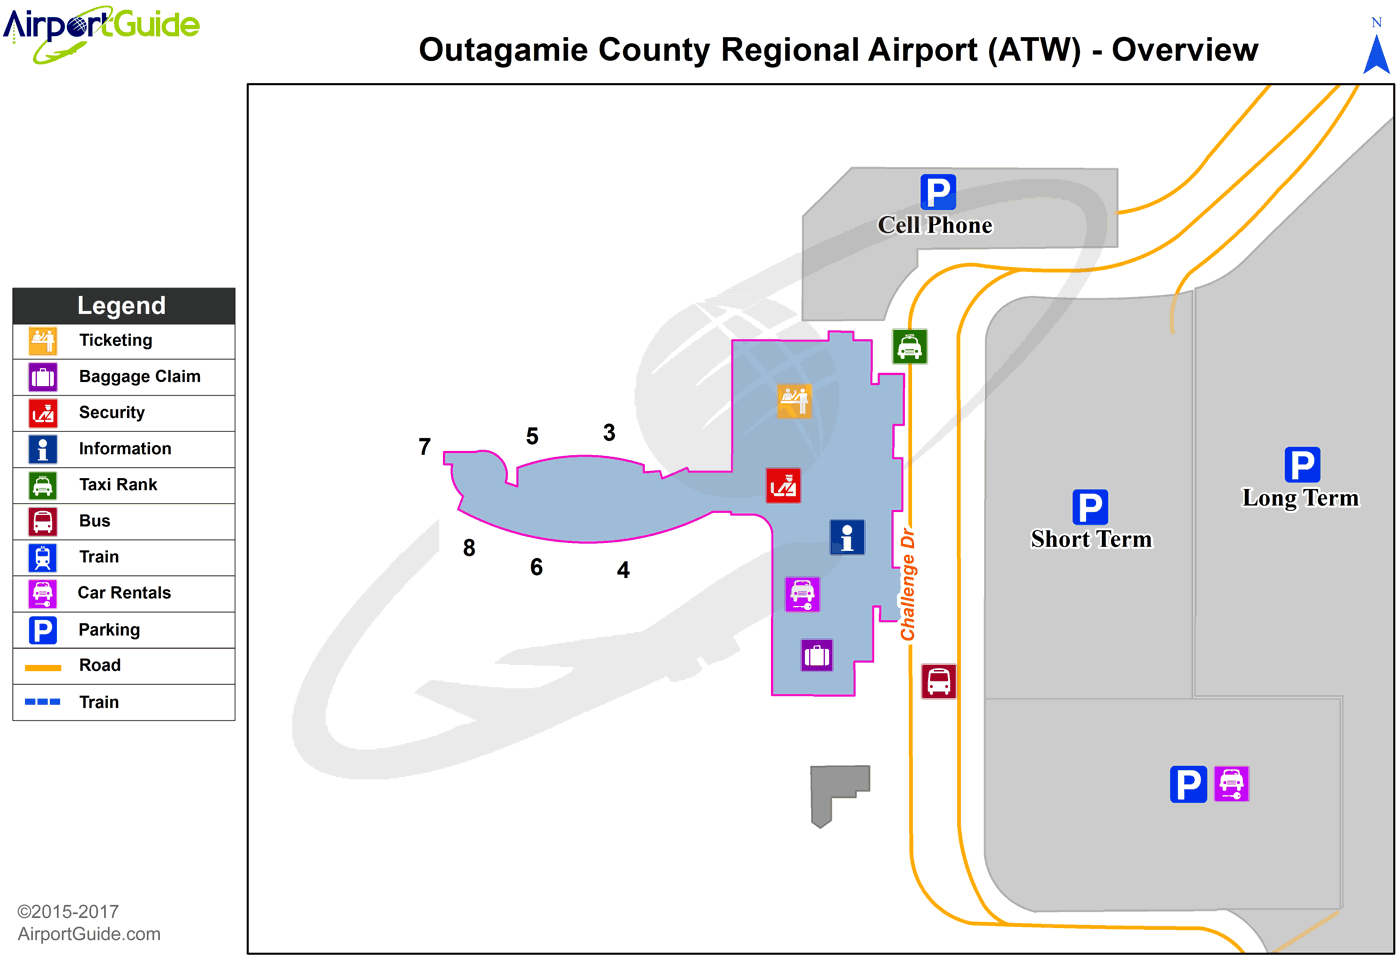 Appleton - Appleton International (ATW) Airport Terminal Map - Overview